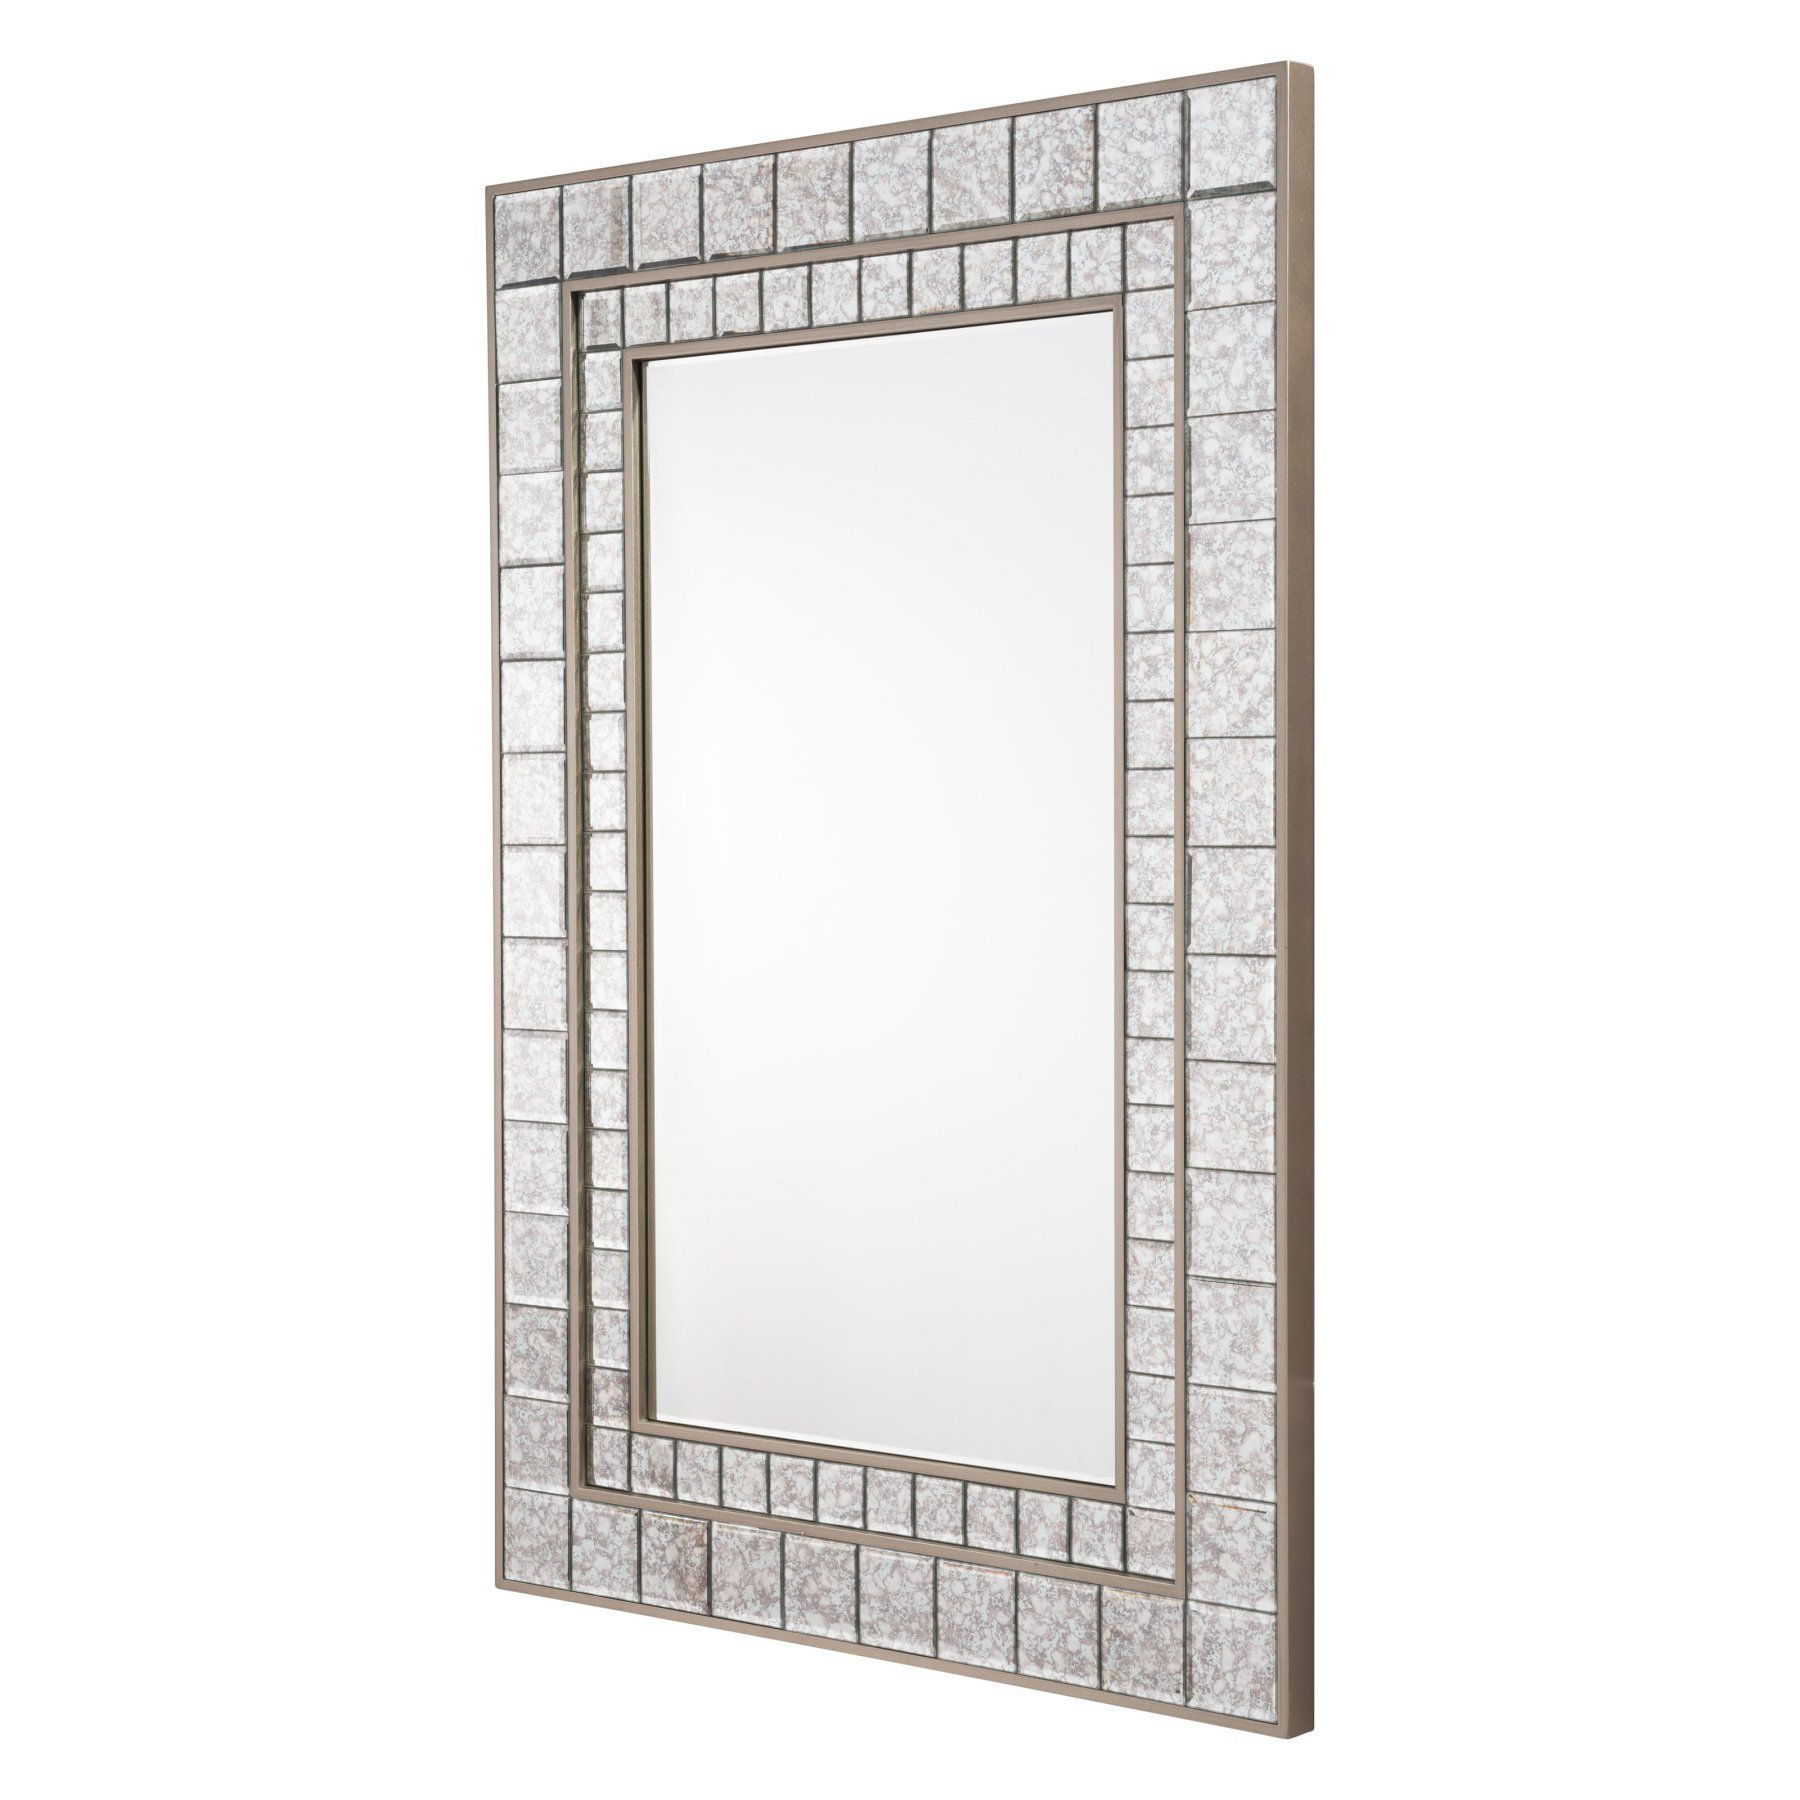 Pennsburg Rectangle Wall Mirrors For Best And Newest Zuo Modern Contemporary Antique Square Mini Mirror Framed Mirror (View 18 of 20)